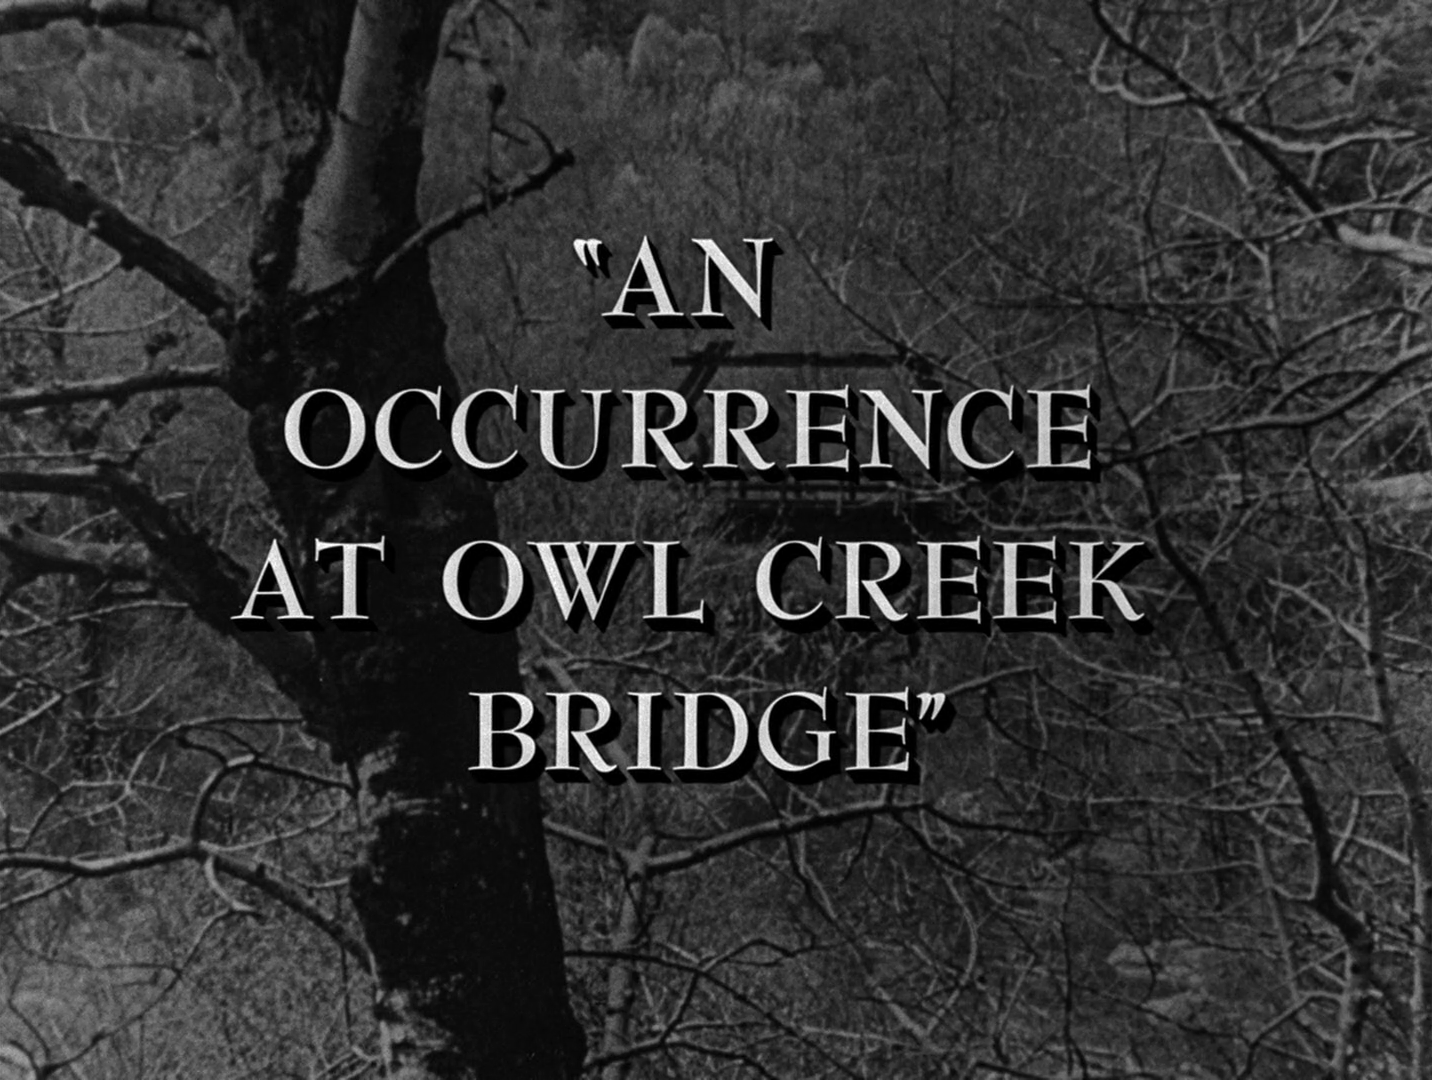 the occurrence at owl creek bridge An occurrence at owl creek bridge is set during the american civil war it opens as a man is about to be hanged from the owl creek bridge by union.